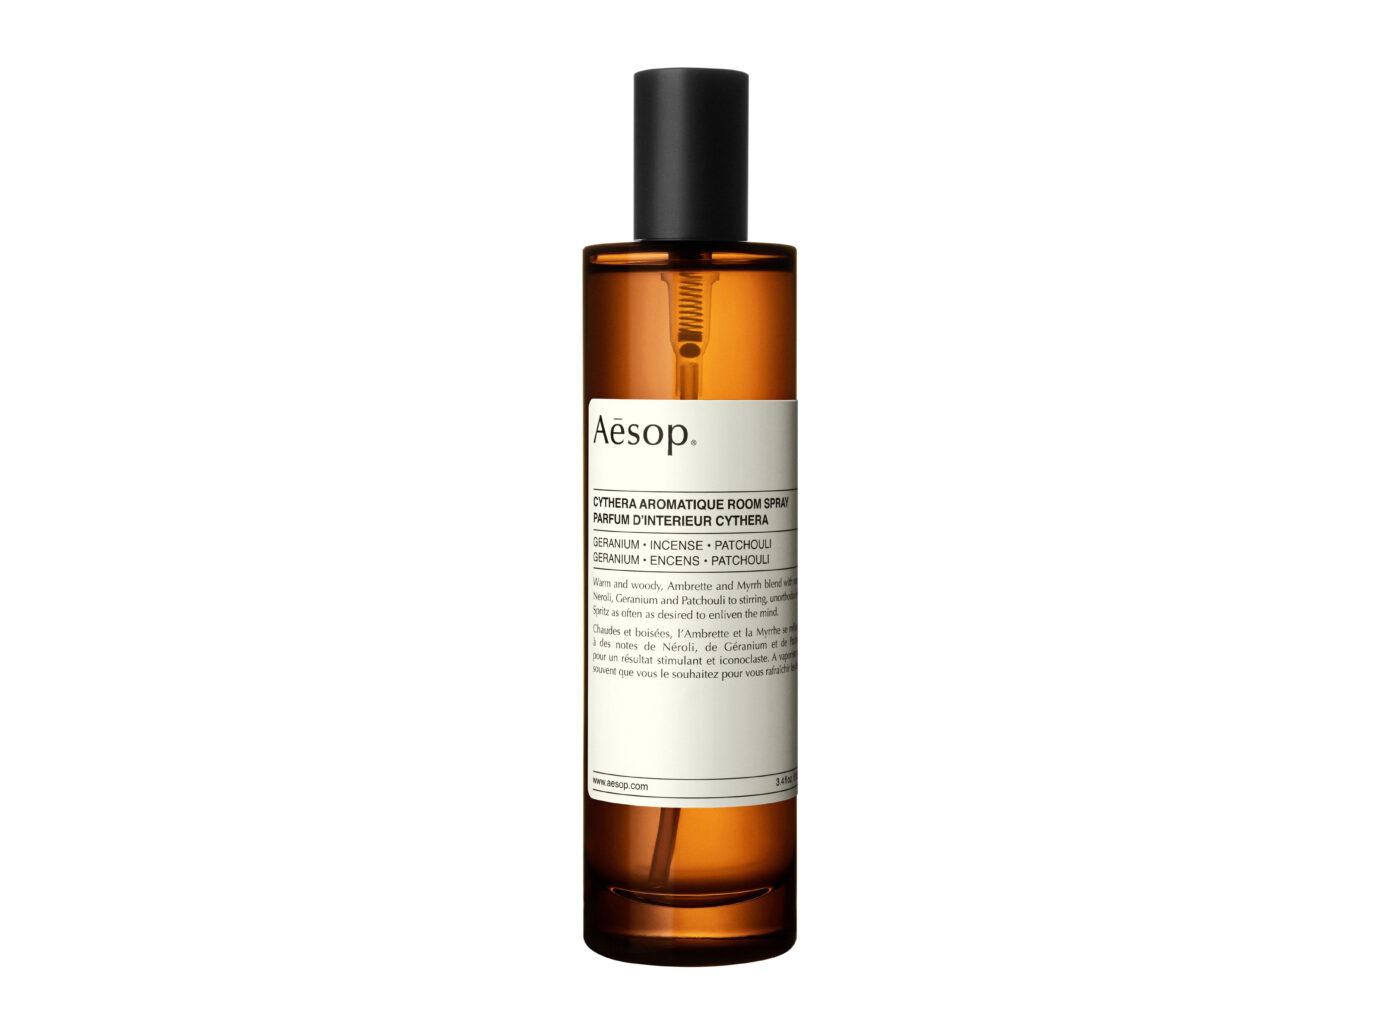 Aesop Aromatique Room Spray